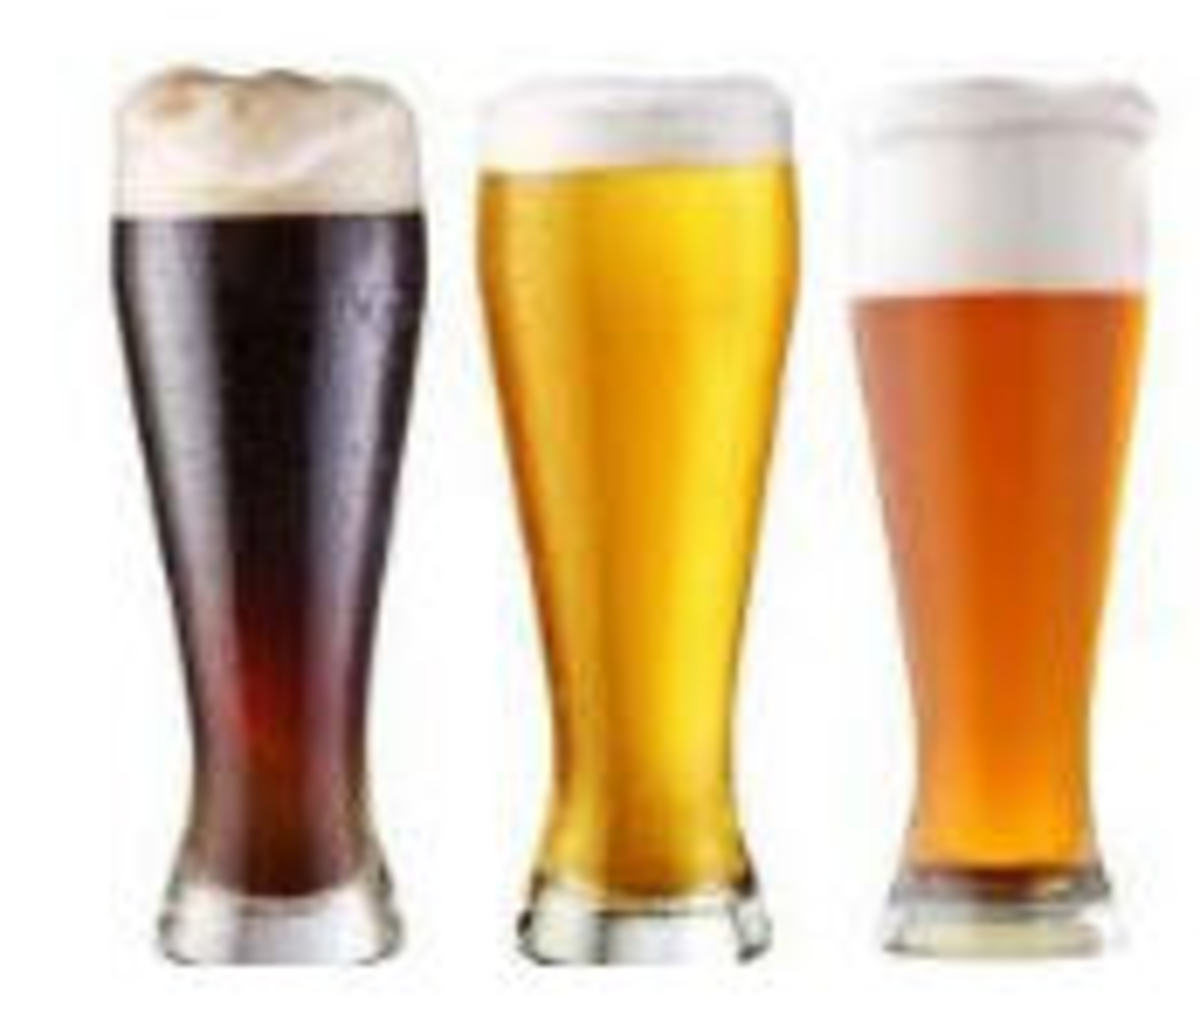 Unpasteurized Beers - List of beers that are not pasteurized